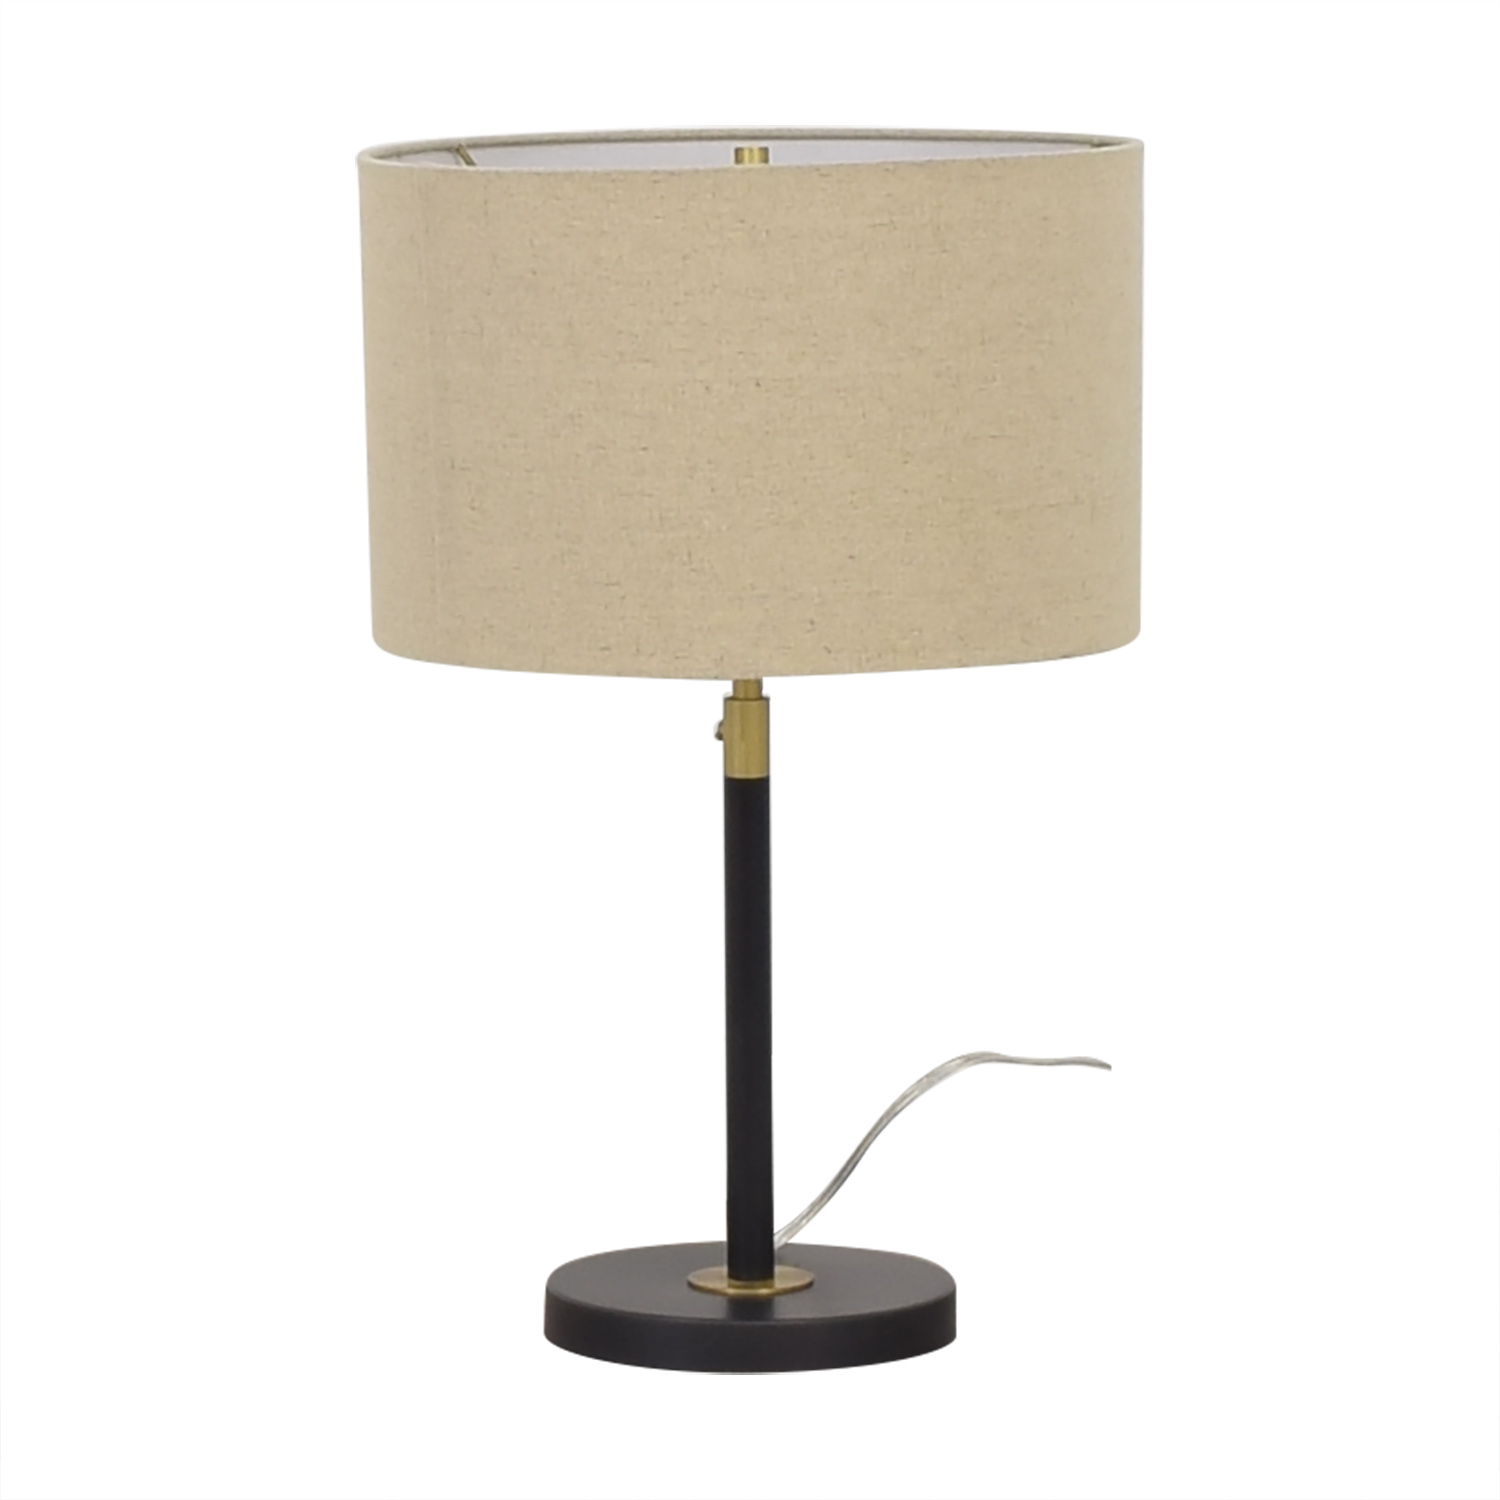 West Elm West Elm Telescoping Adjustable Table Lamp price